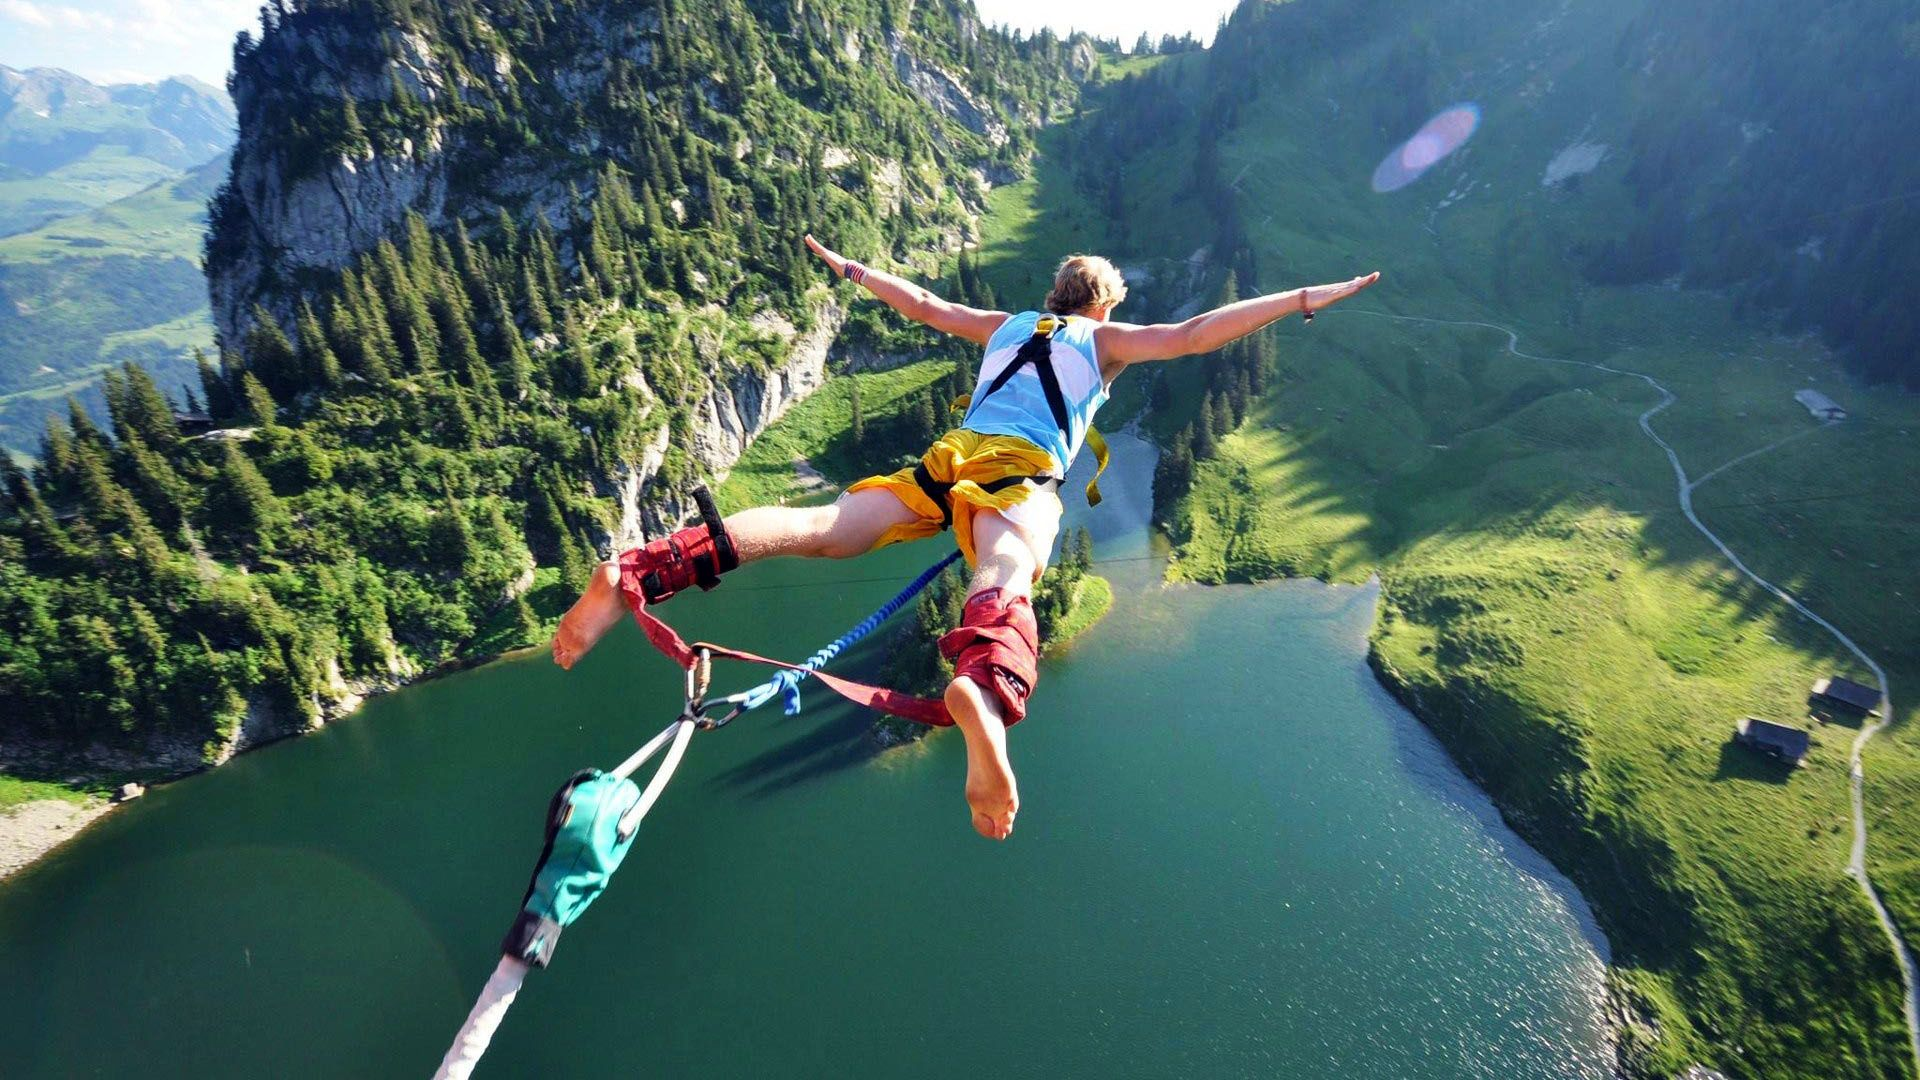 Bungee_Jumping-1